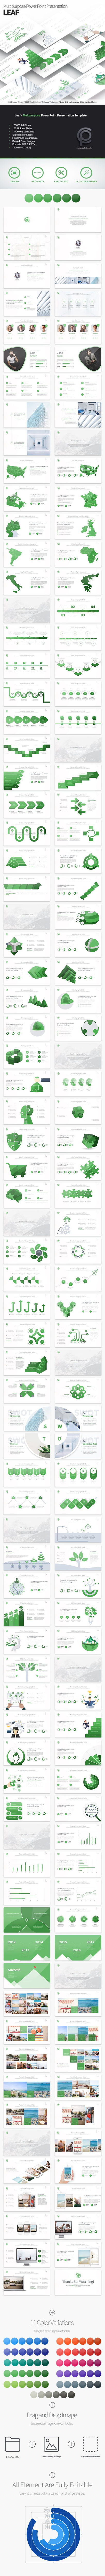 Leaf - Multipurpose PowerPoint Presentation Template - #Business #PowerPoint #Templates Download here: https://graphicriver.net/item/leaf-multipurpose-powerpoint-presentation-template/19603819?ref=alena994